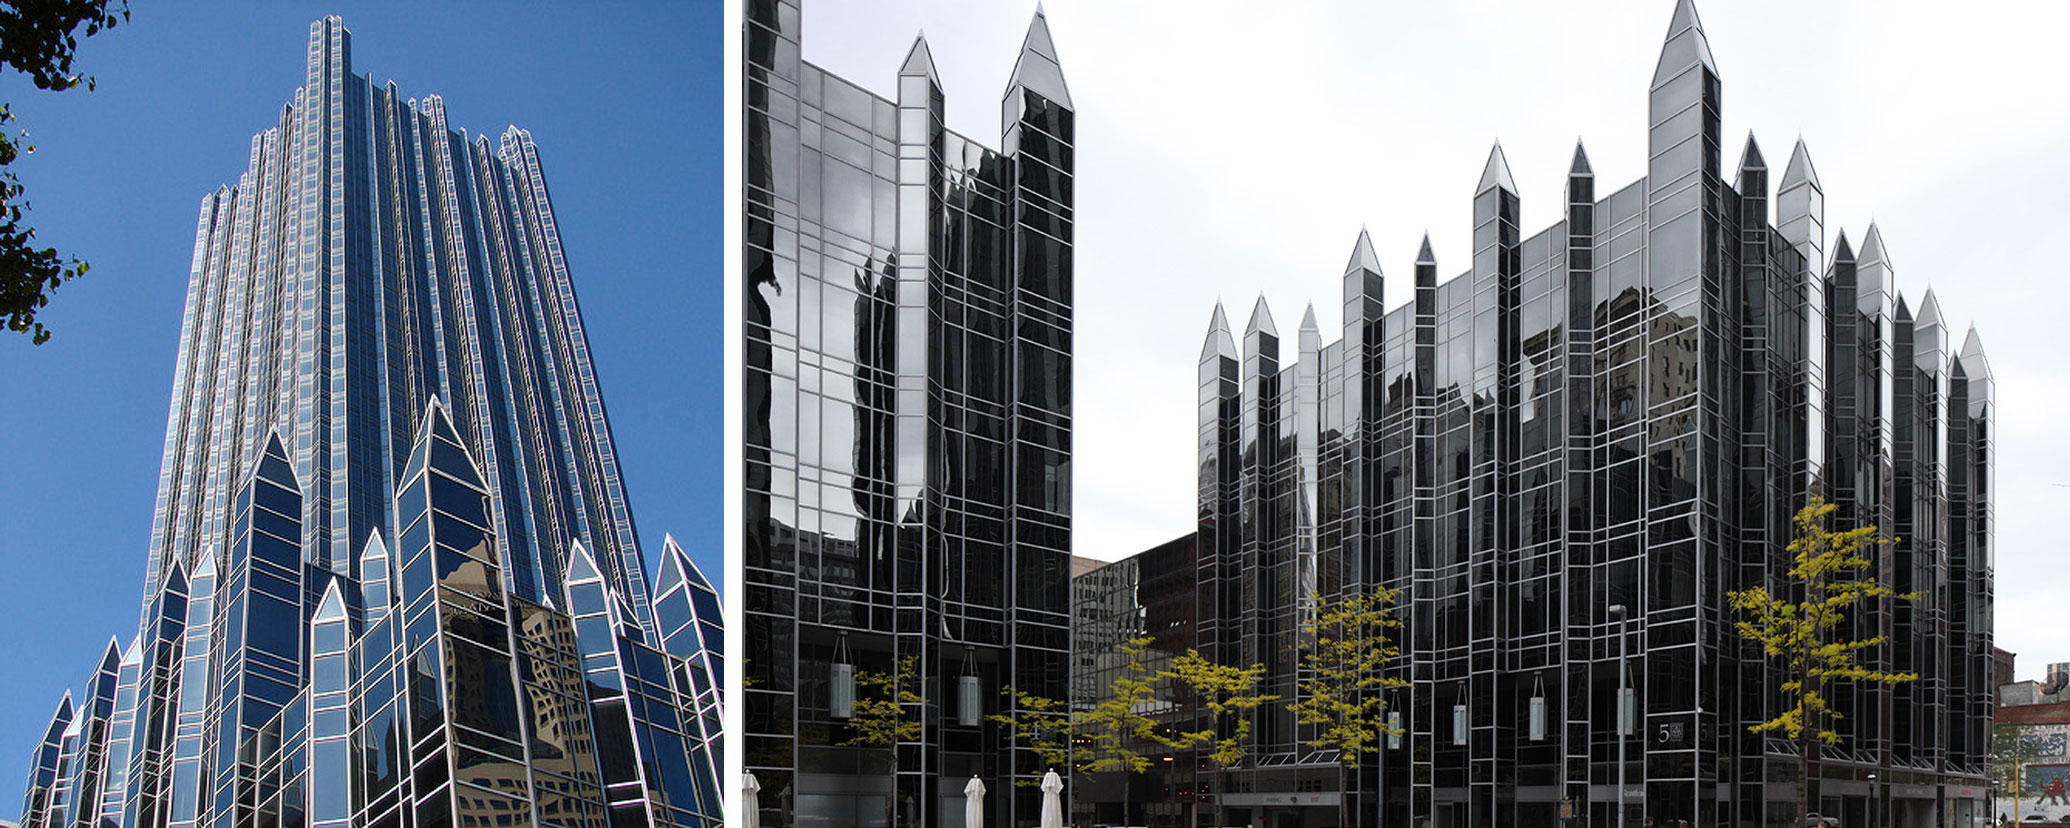 Caddell Construction PPG Tower and Corporate Headquarters Complex in Pittsburg, PA